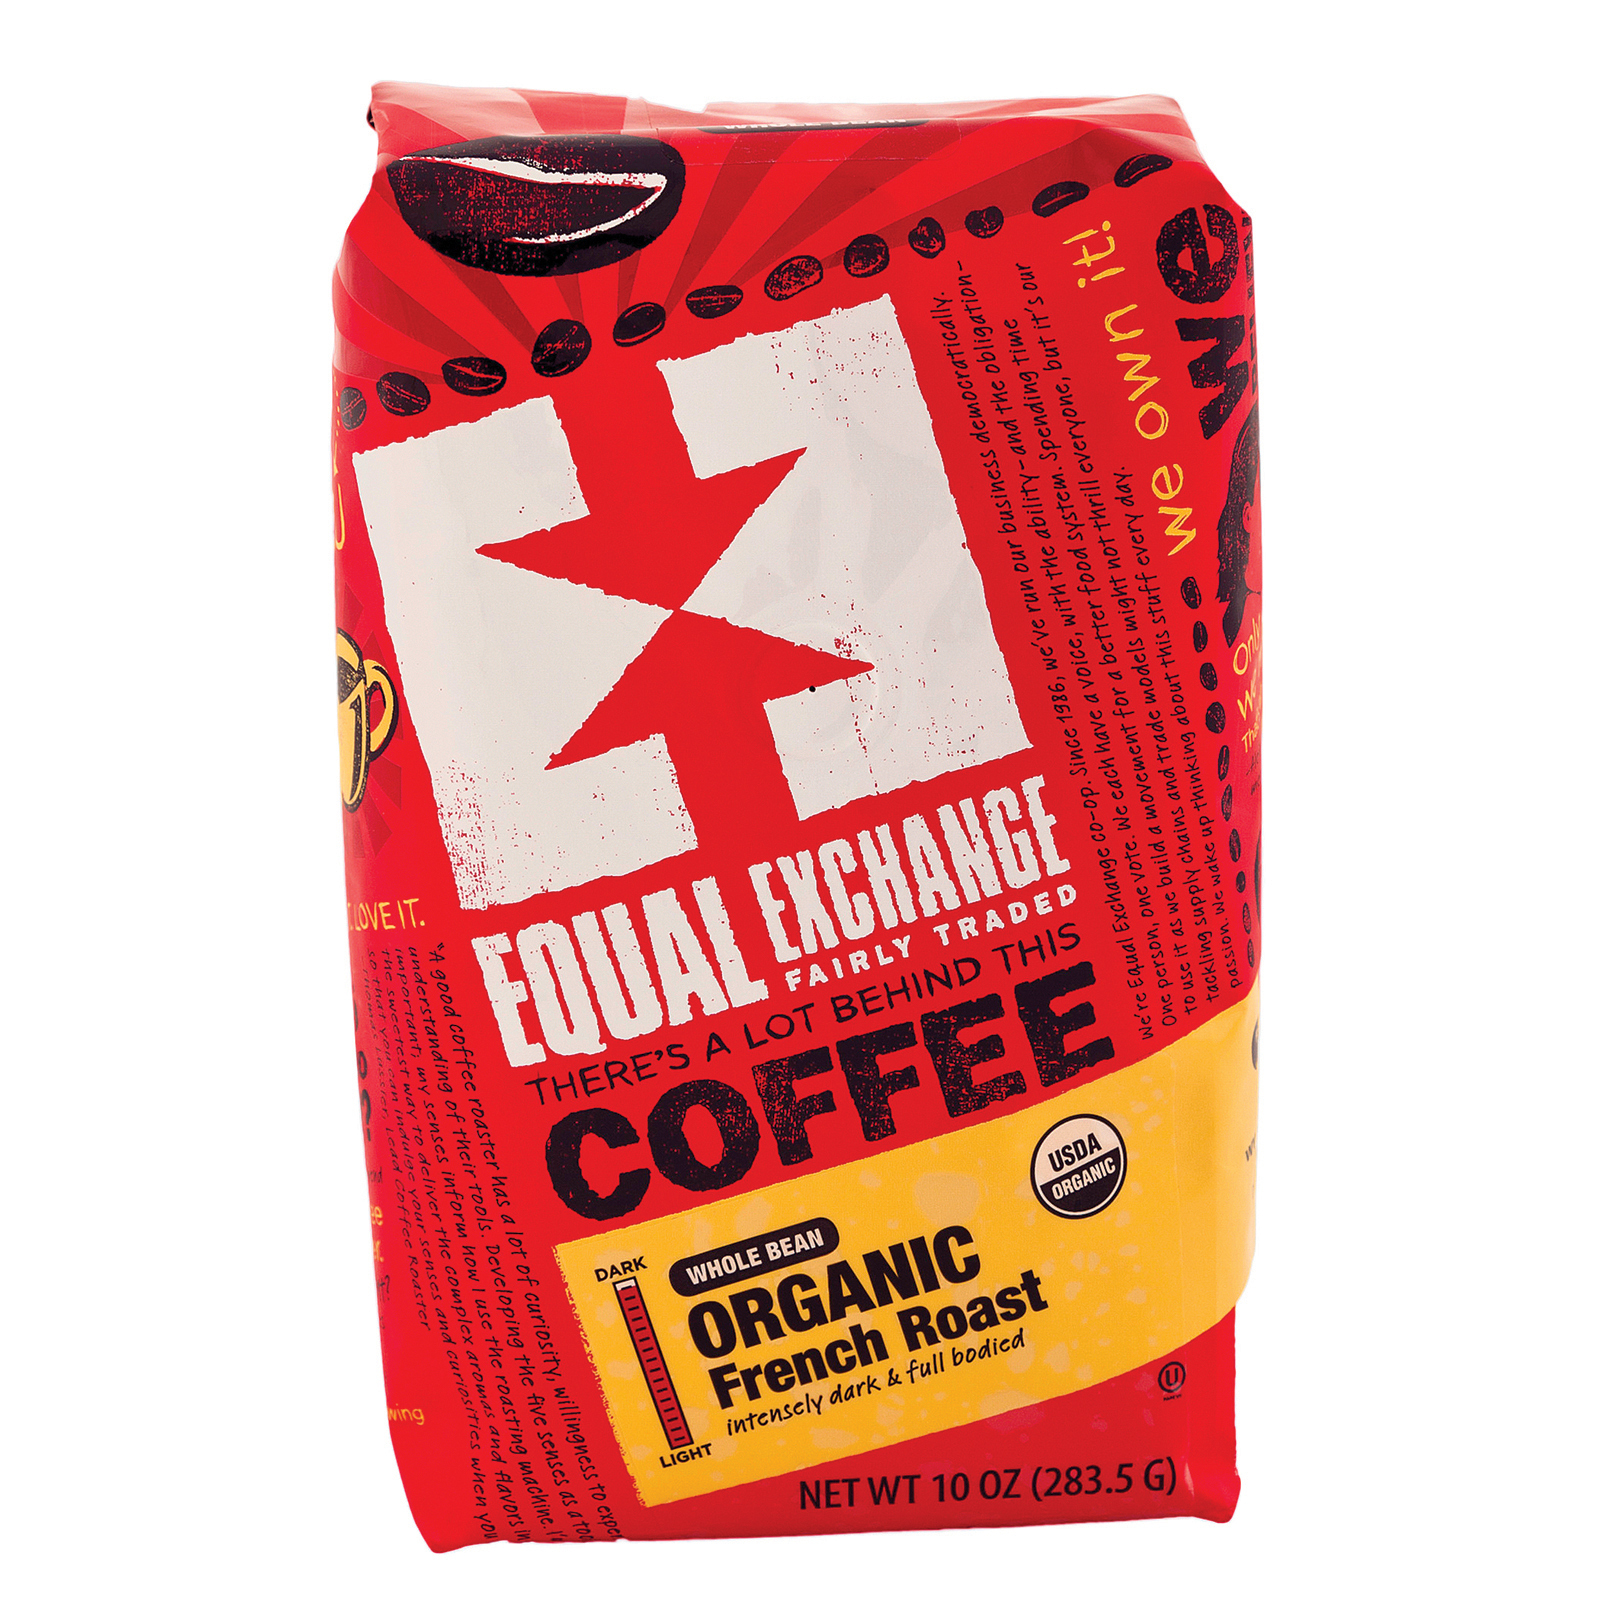 Equal Exchange Organic Whole Bean Coffee - French Roast - Case of 6 - 10 oz.